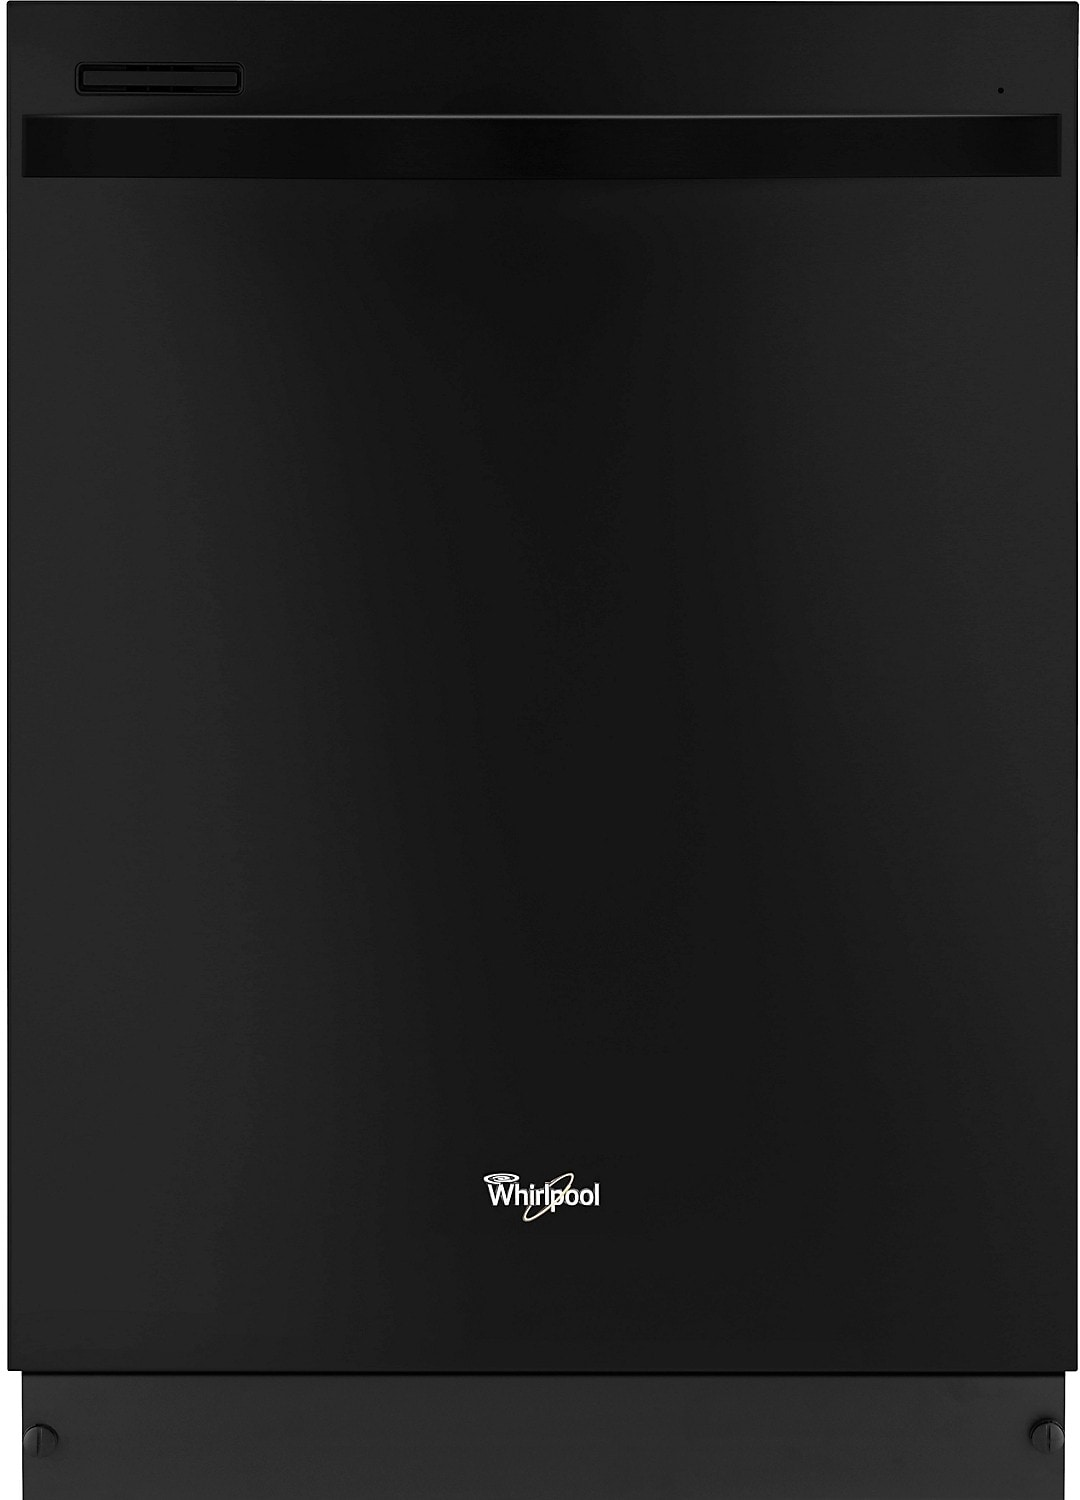 Whirlpool Gold® Built-In Dishwasher - Black